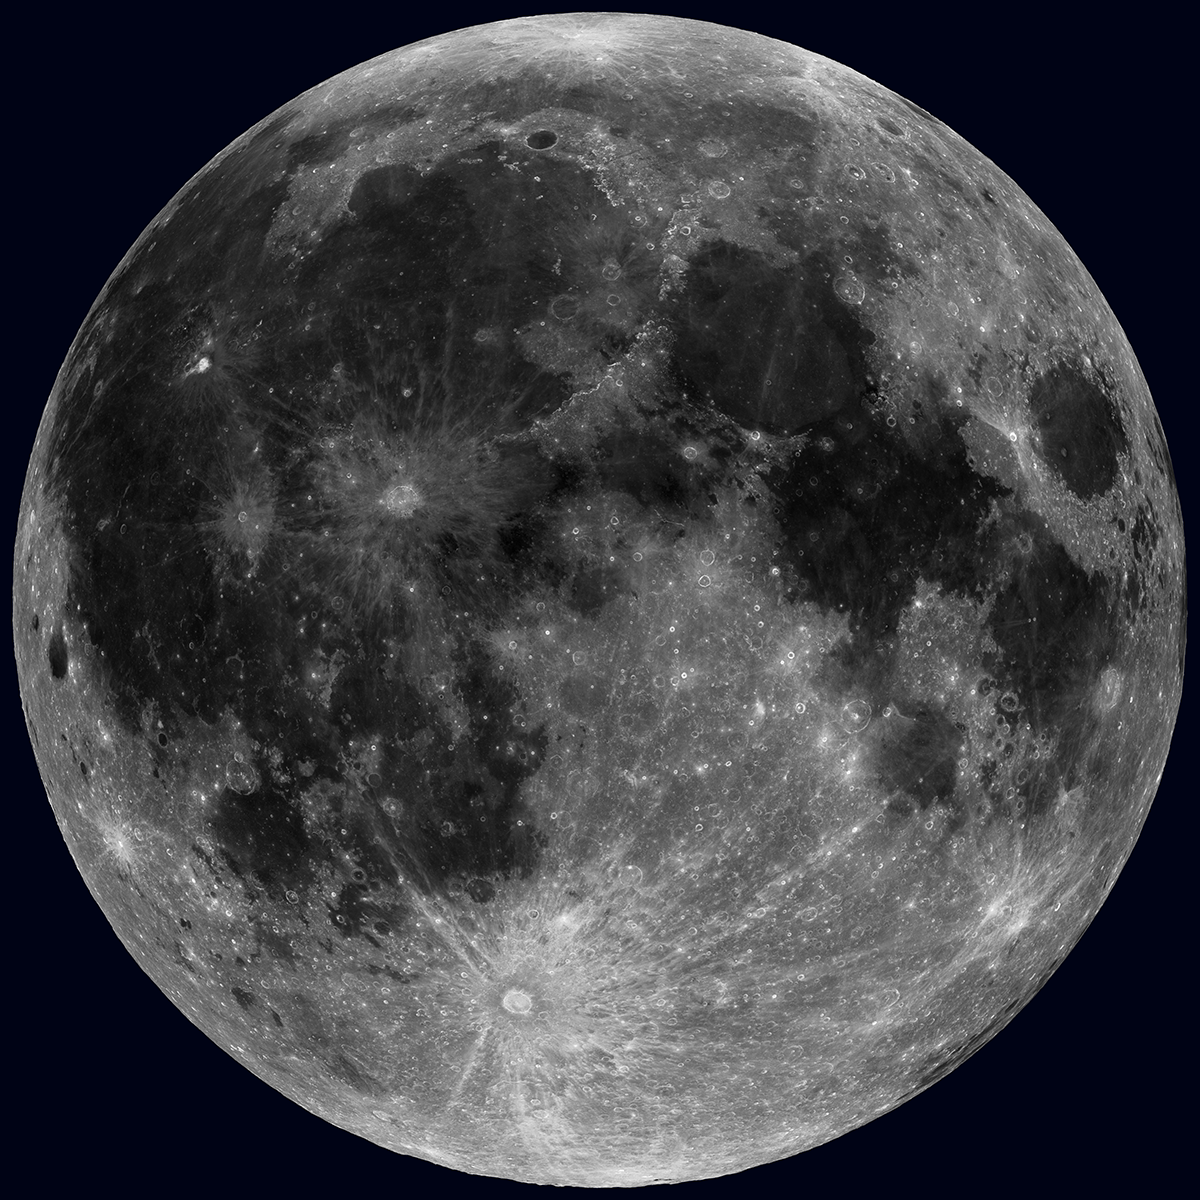 Mosaic image of the Moon taken with the Lunar Reconnaissance Orbiter Cameras